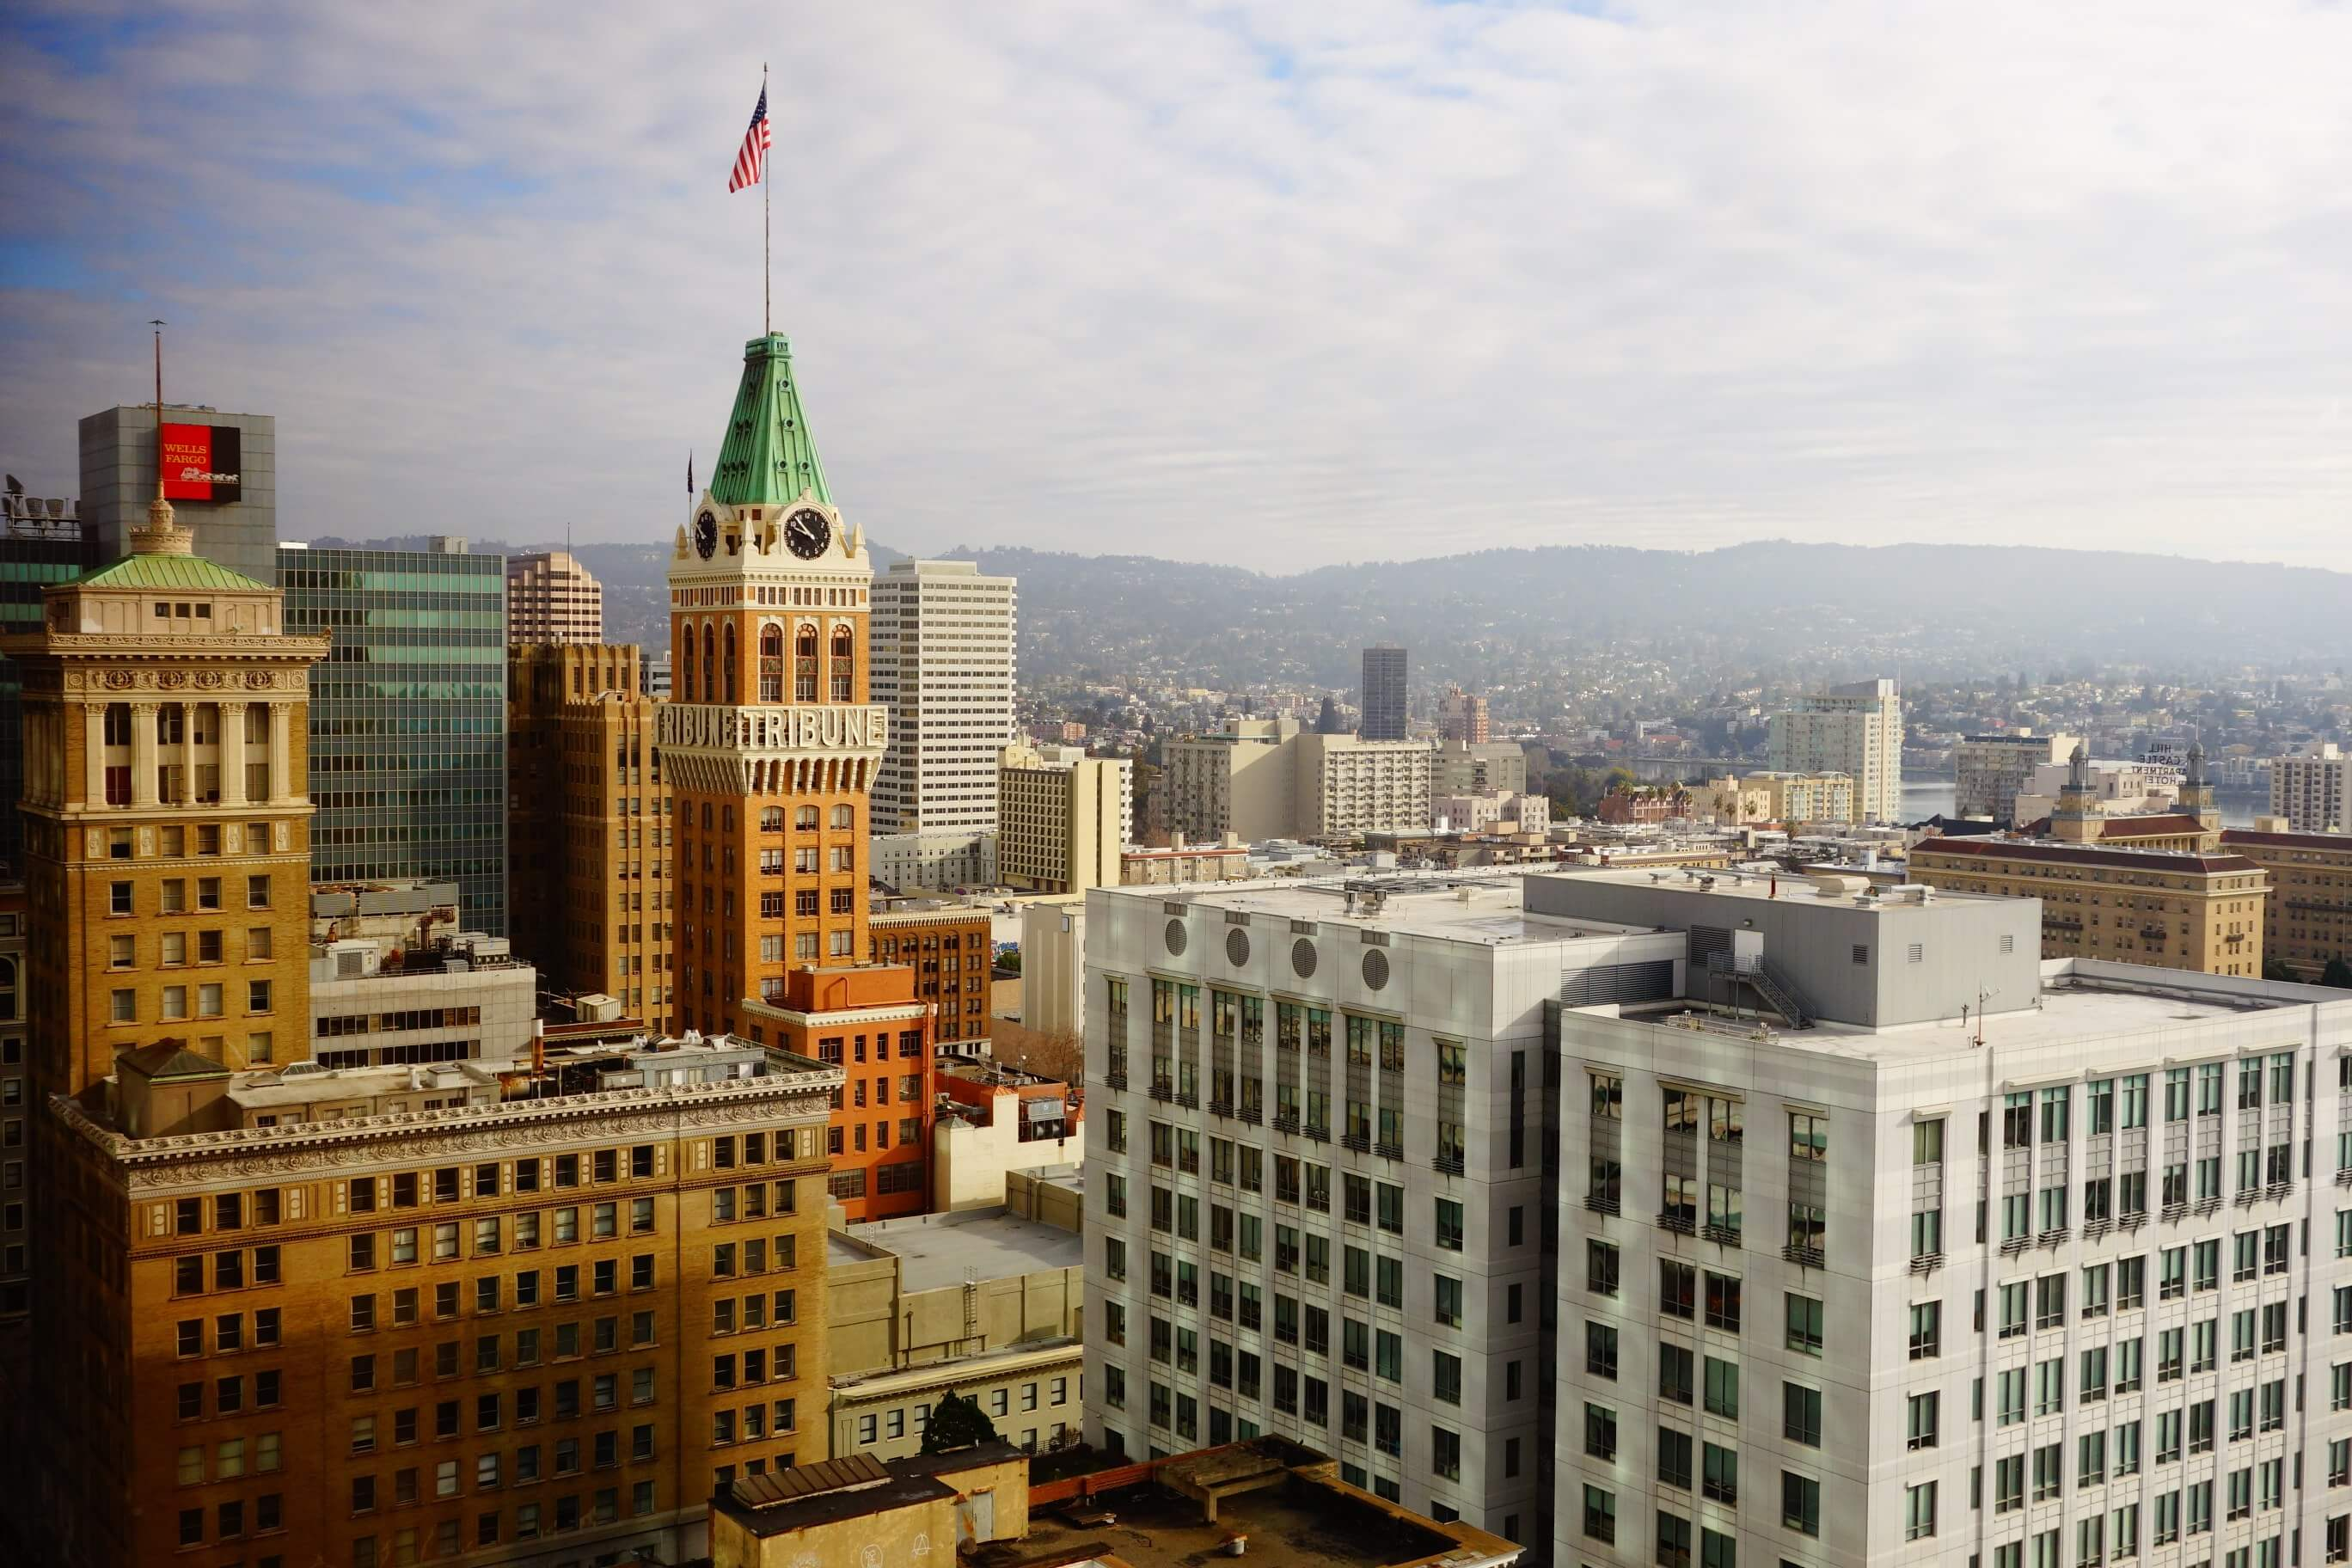 Oakland is the third largest city in the Bay Area.